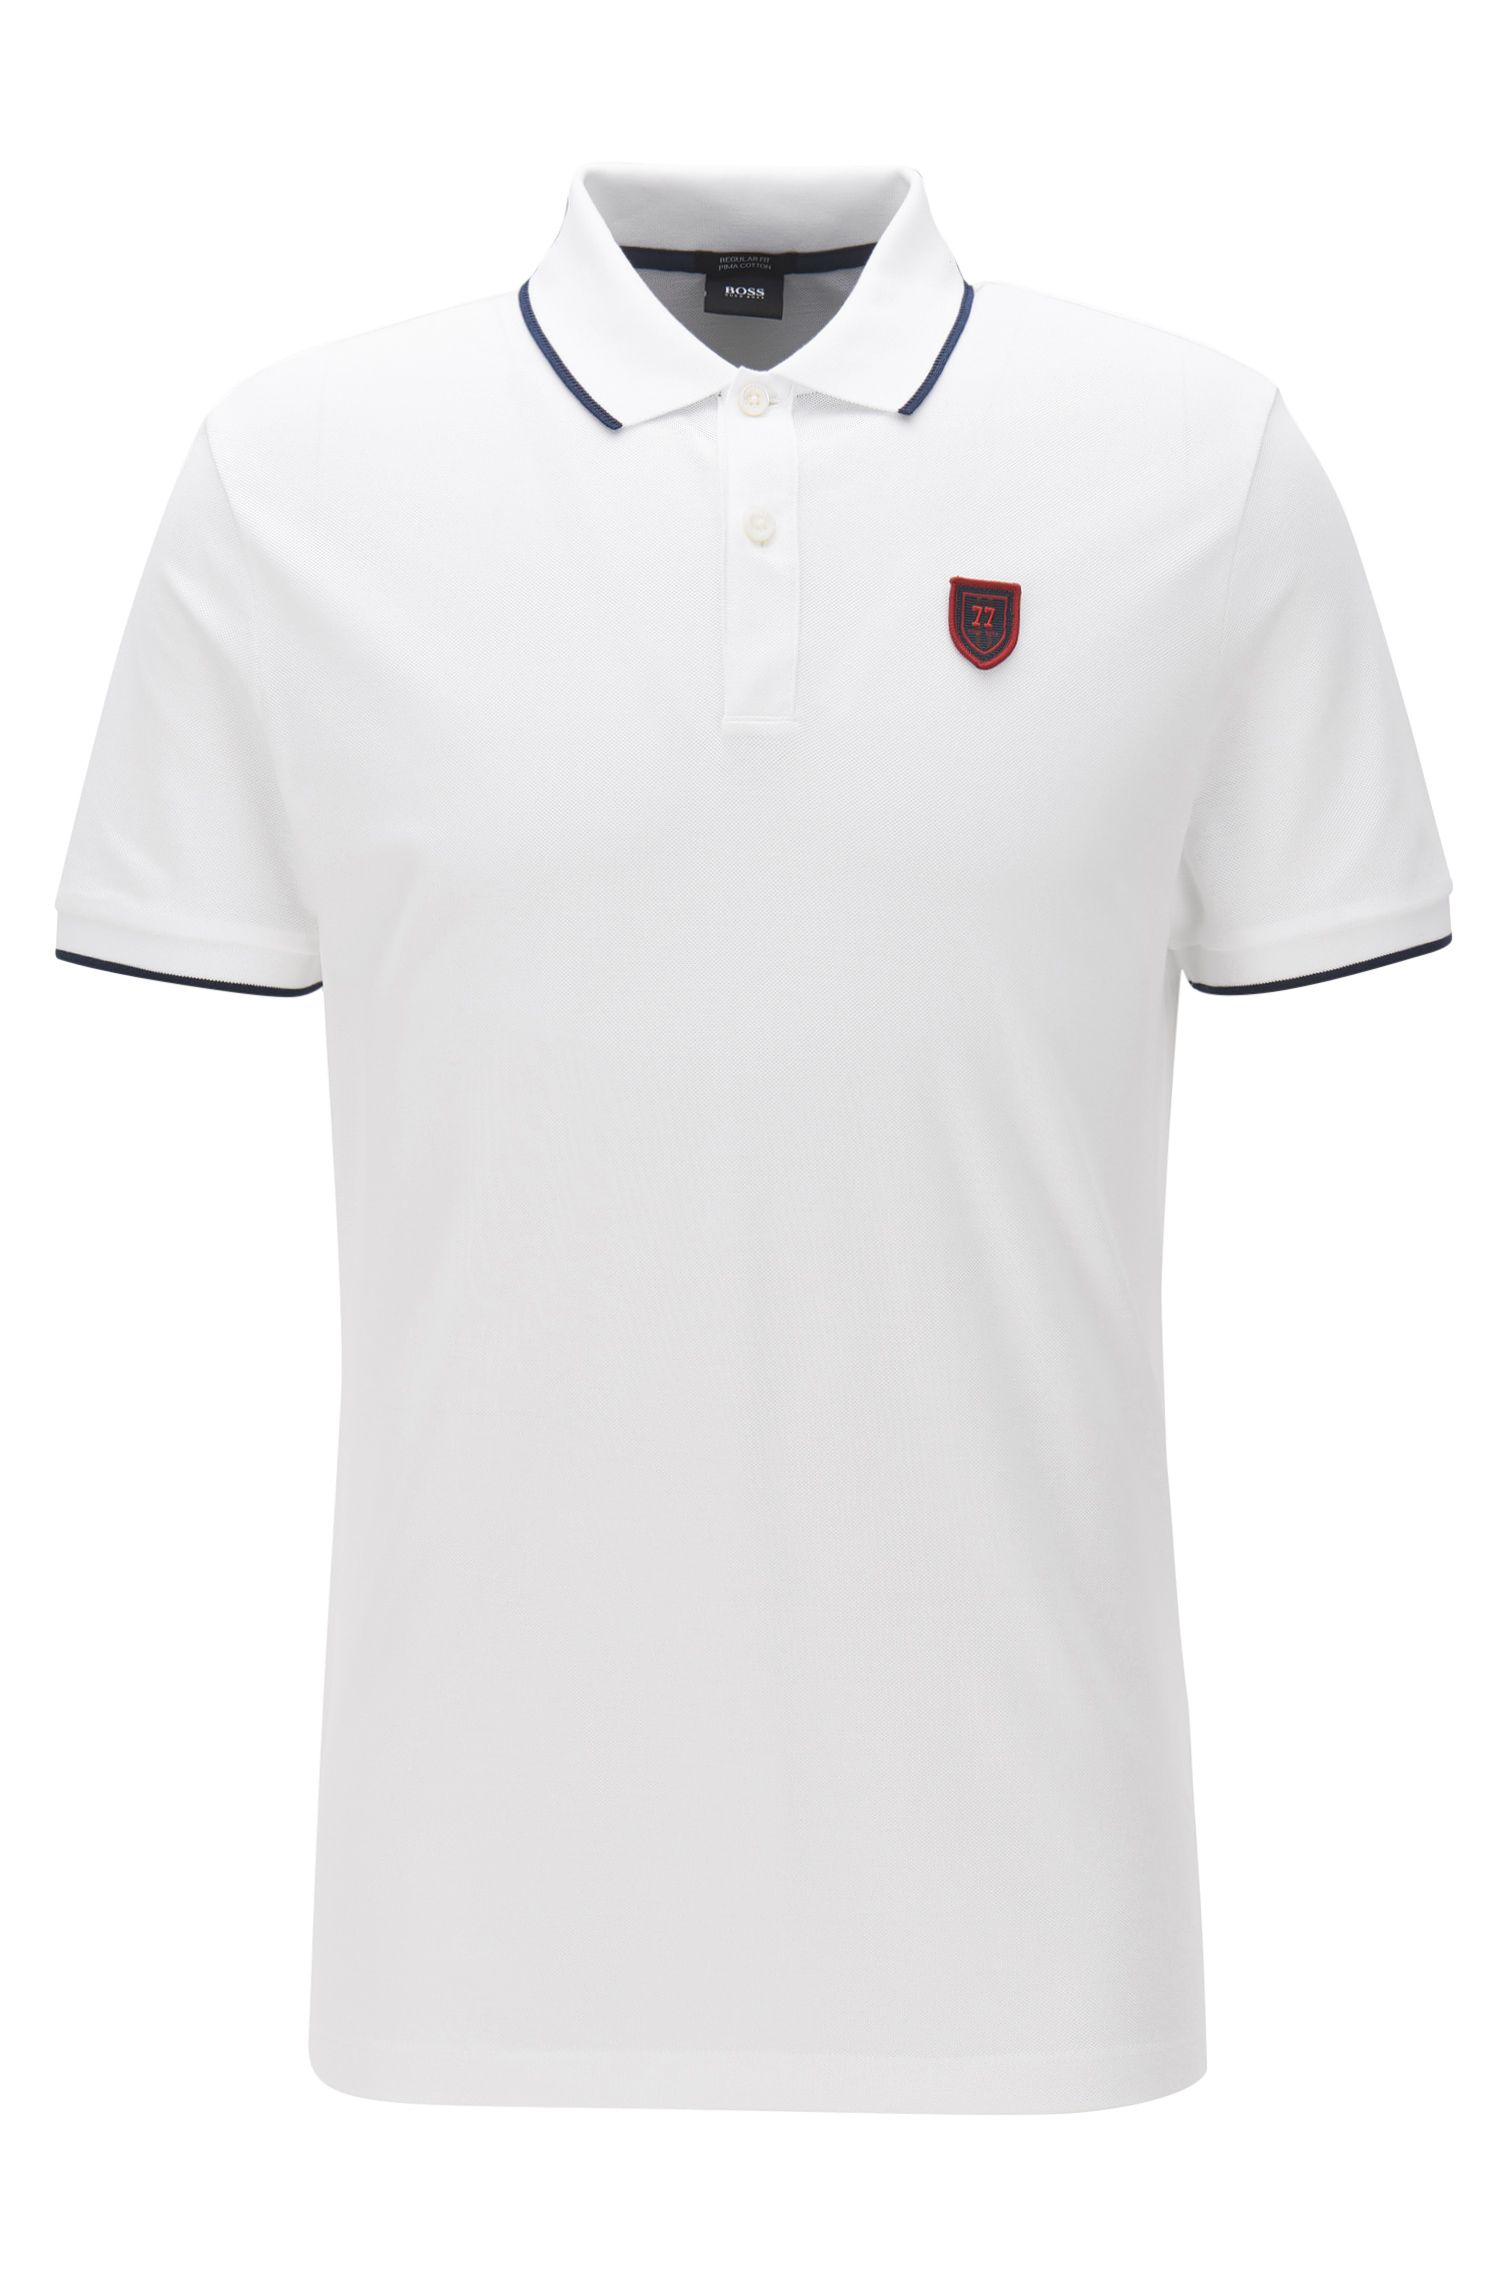 Regular-Fit Poloshirt aus Baumwolle mit BOSS Logo-Applikation